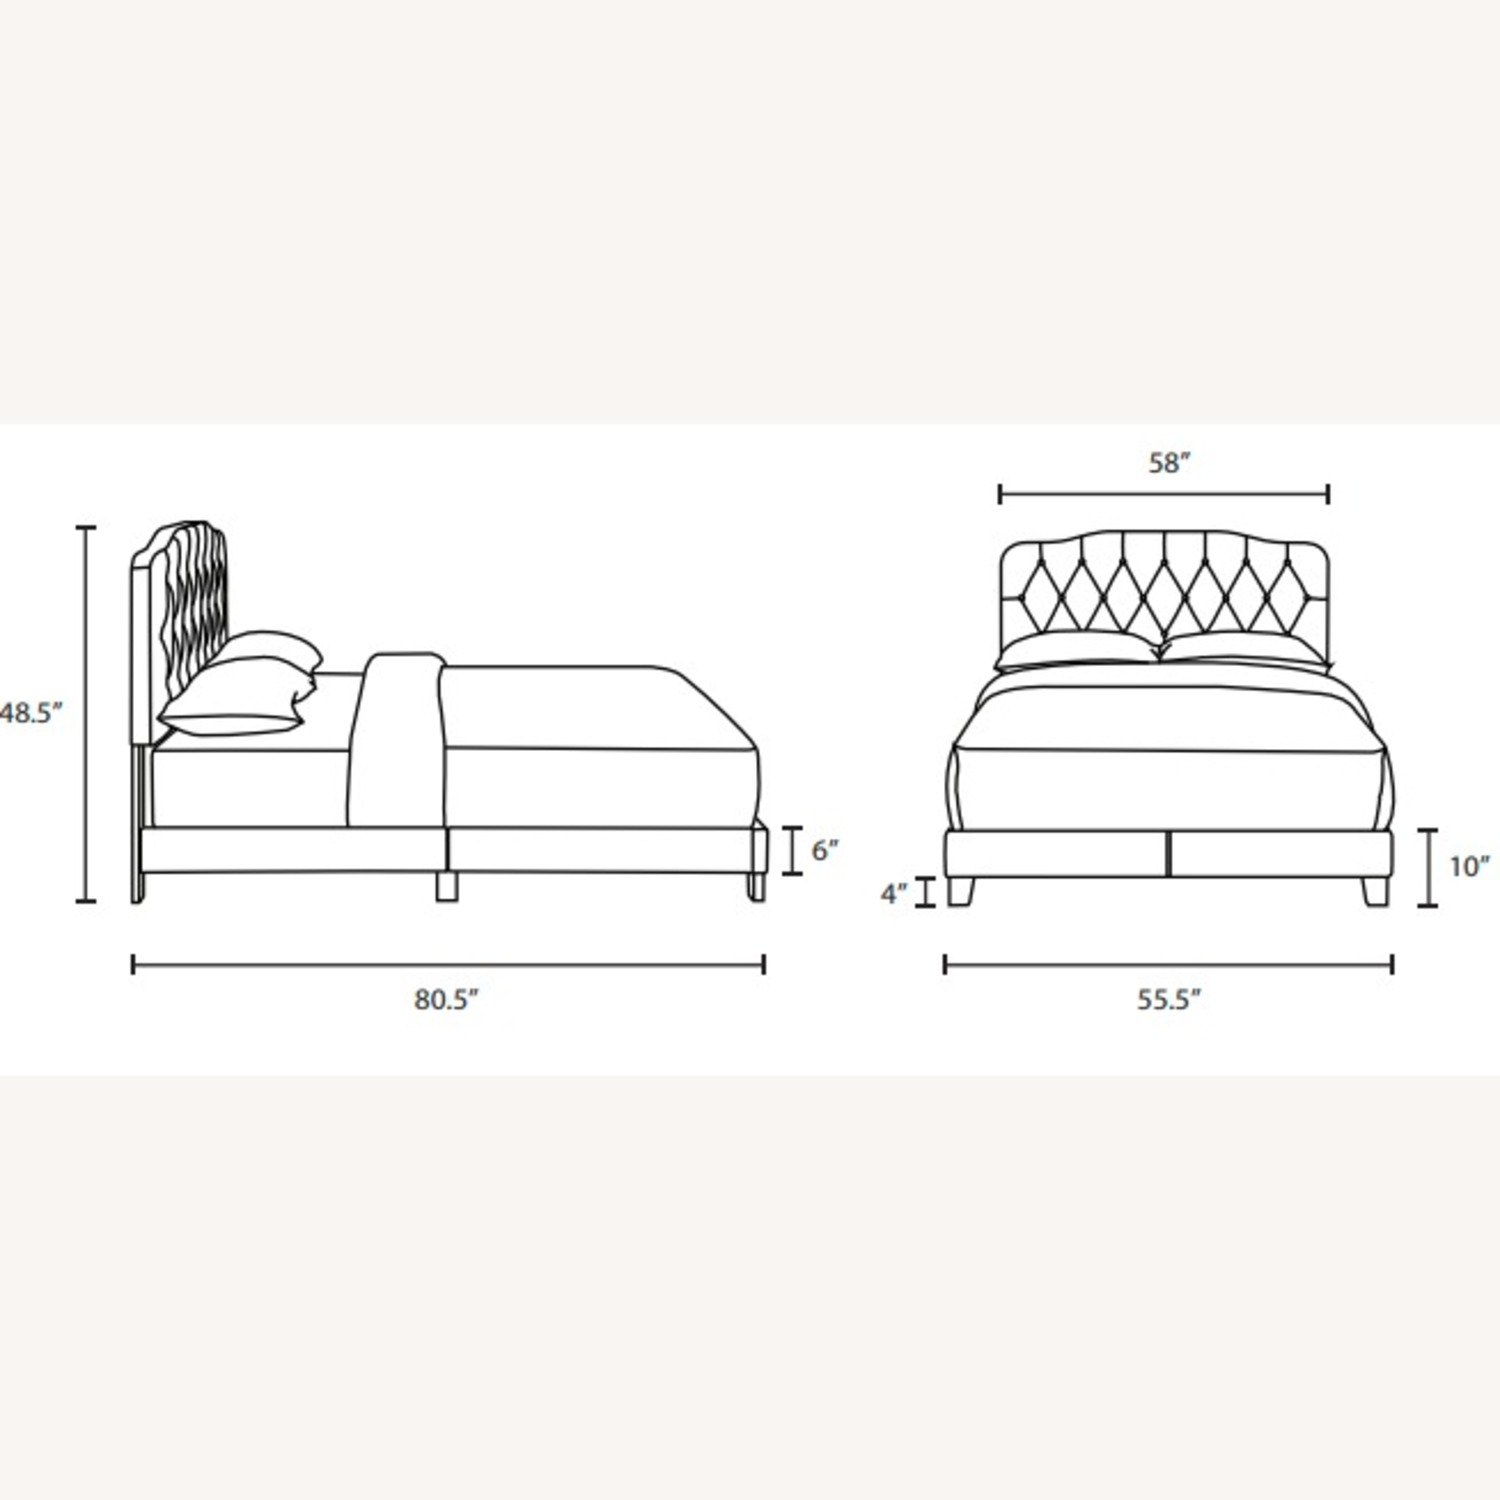 Full Bed In White Button-Tufted Faux Leather - image-5